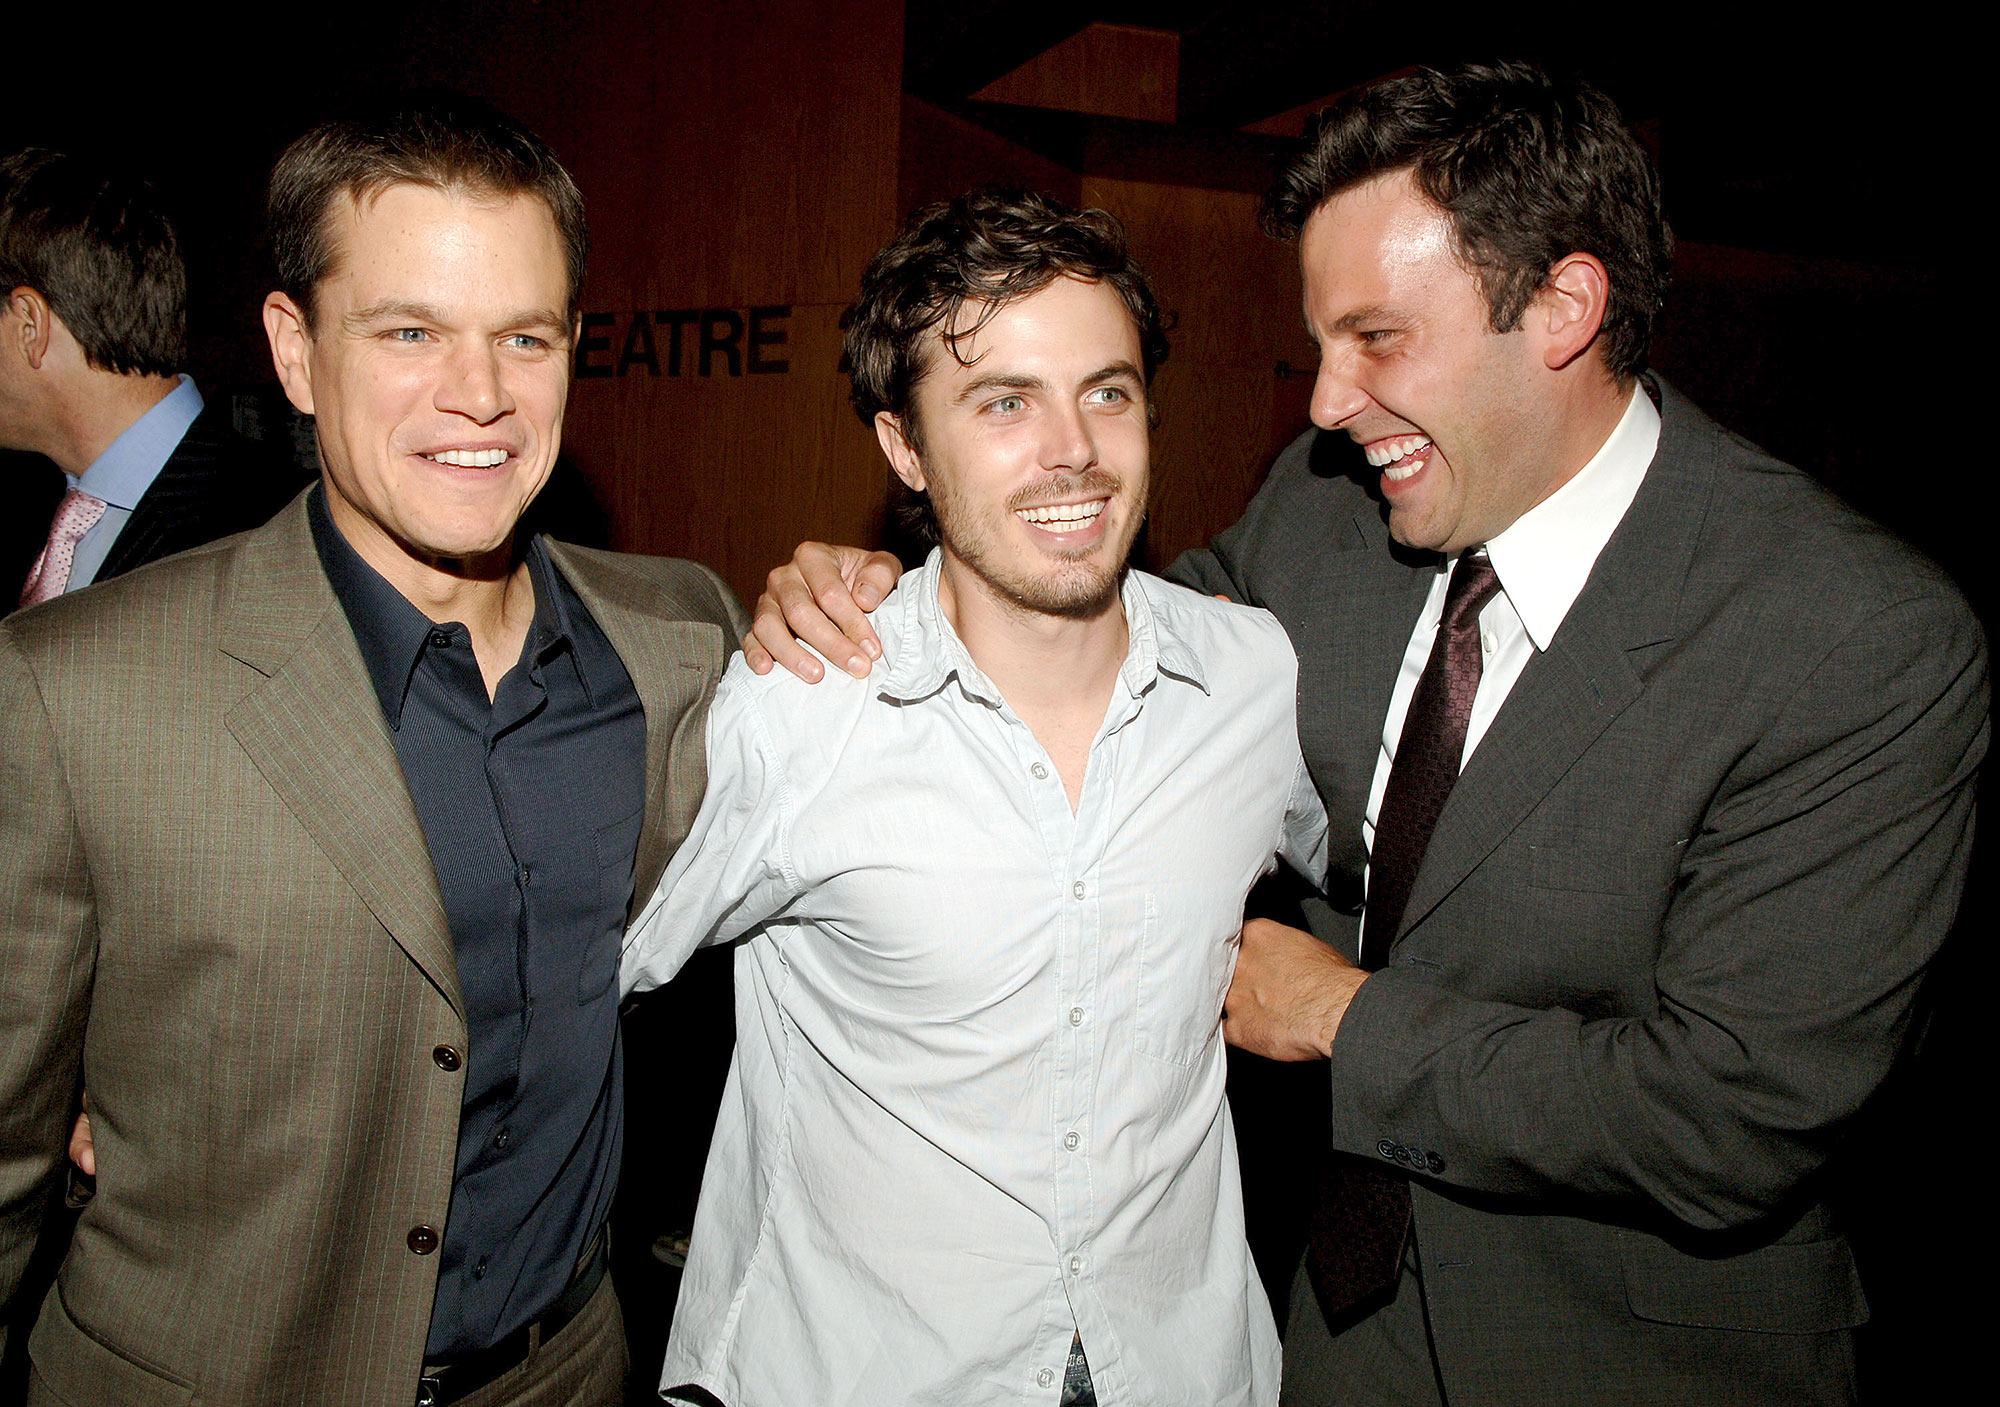 Matt Damon, Casey Affleck and Ben Affleck in Los Angeles, California (Photo by Lester Cohen/WireImage)